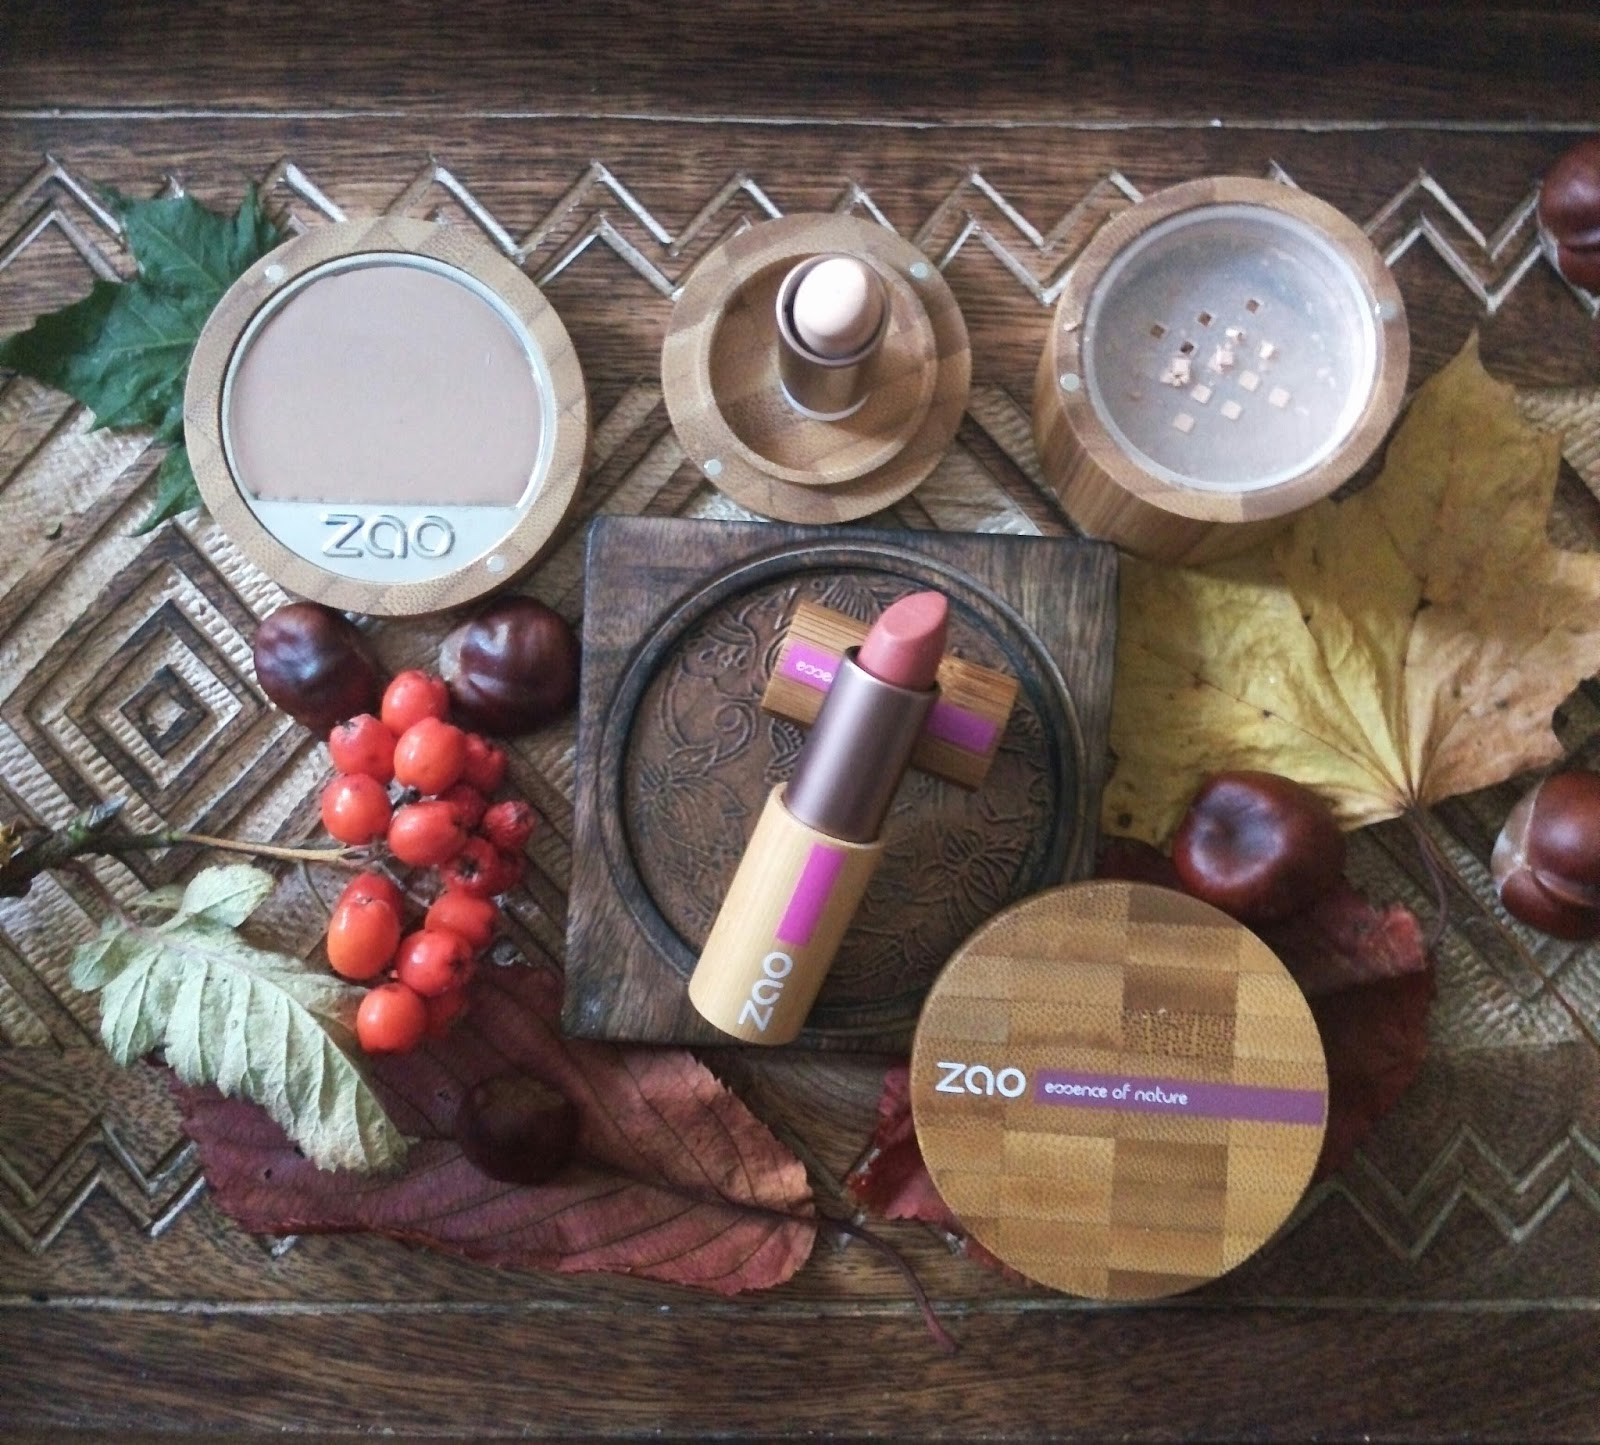 Green Life in Dublin: Zao Organic Make Up Review